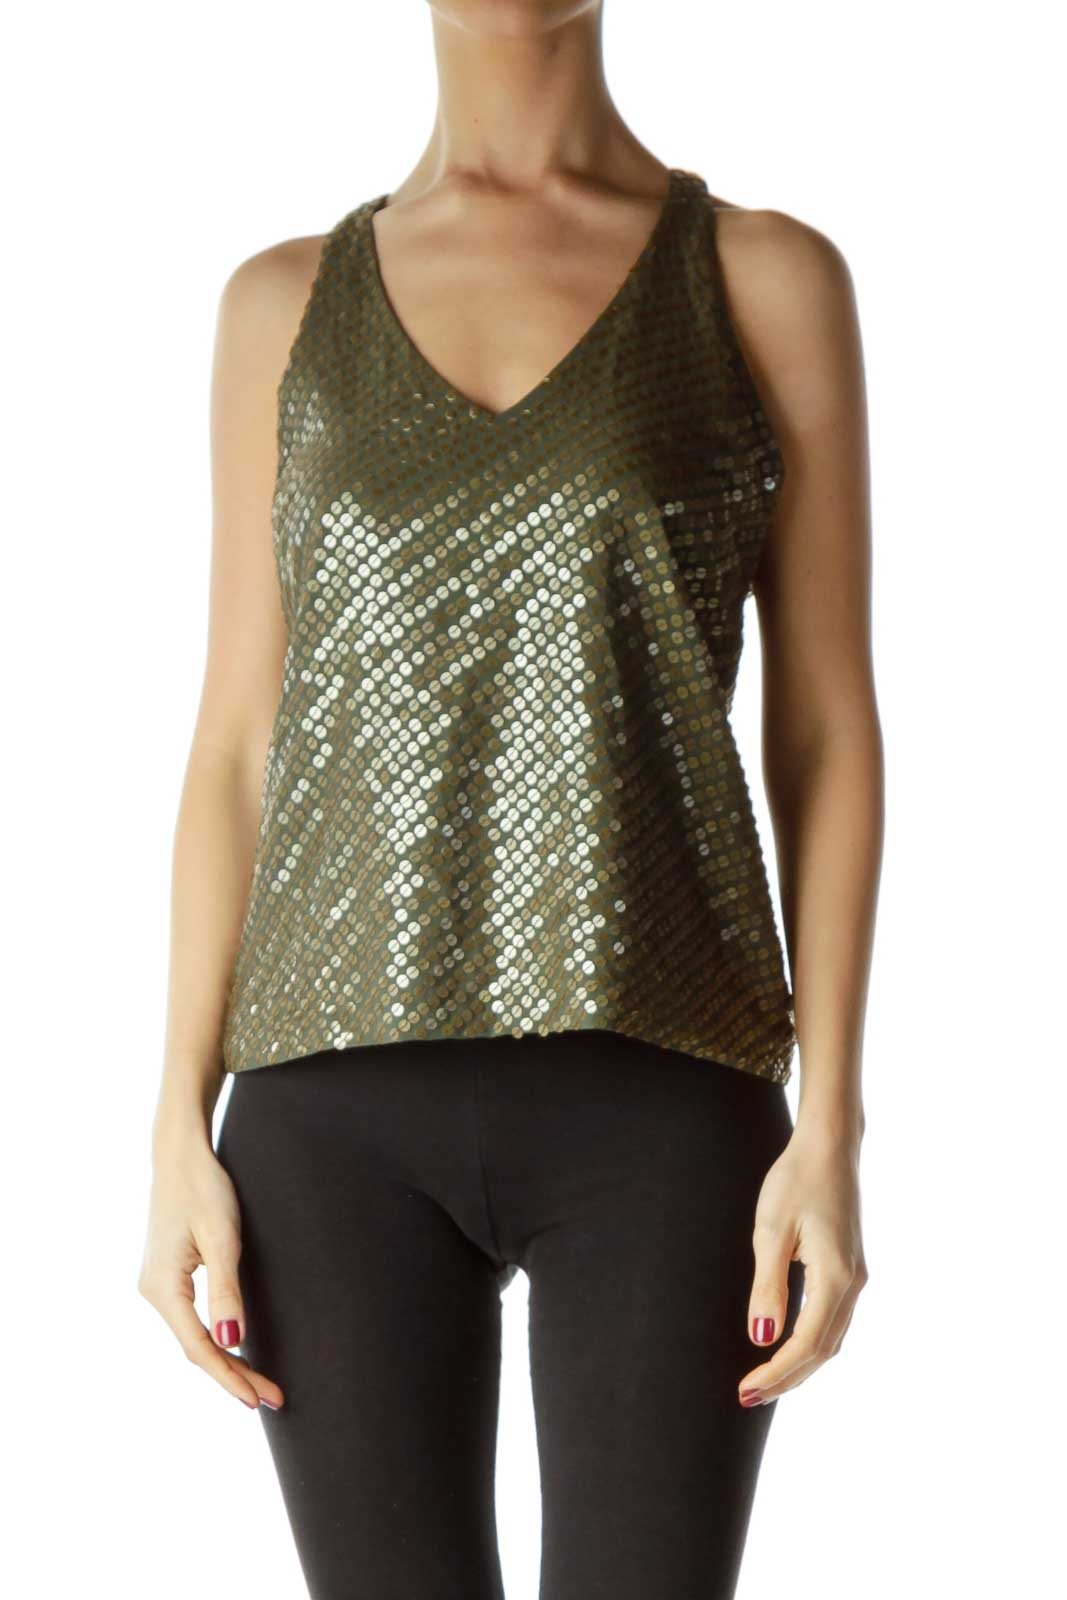 Green Gold Racerback Tank Top Front